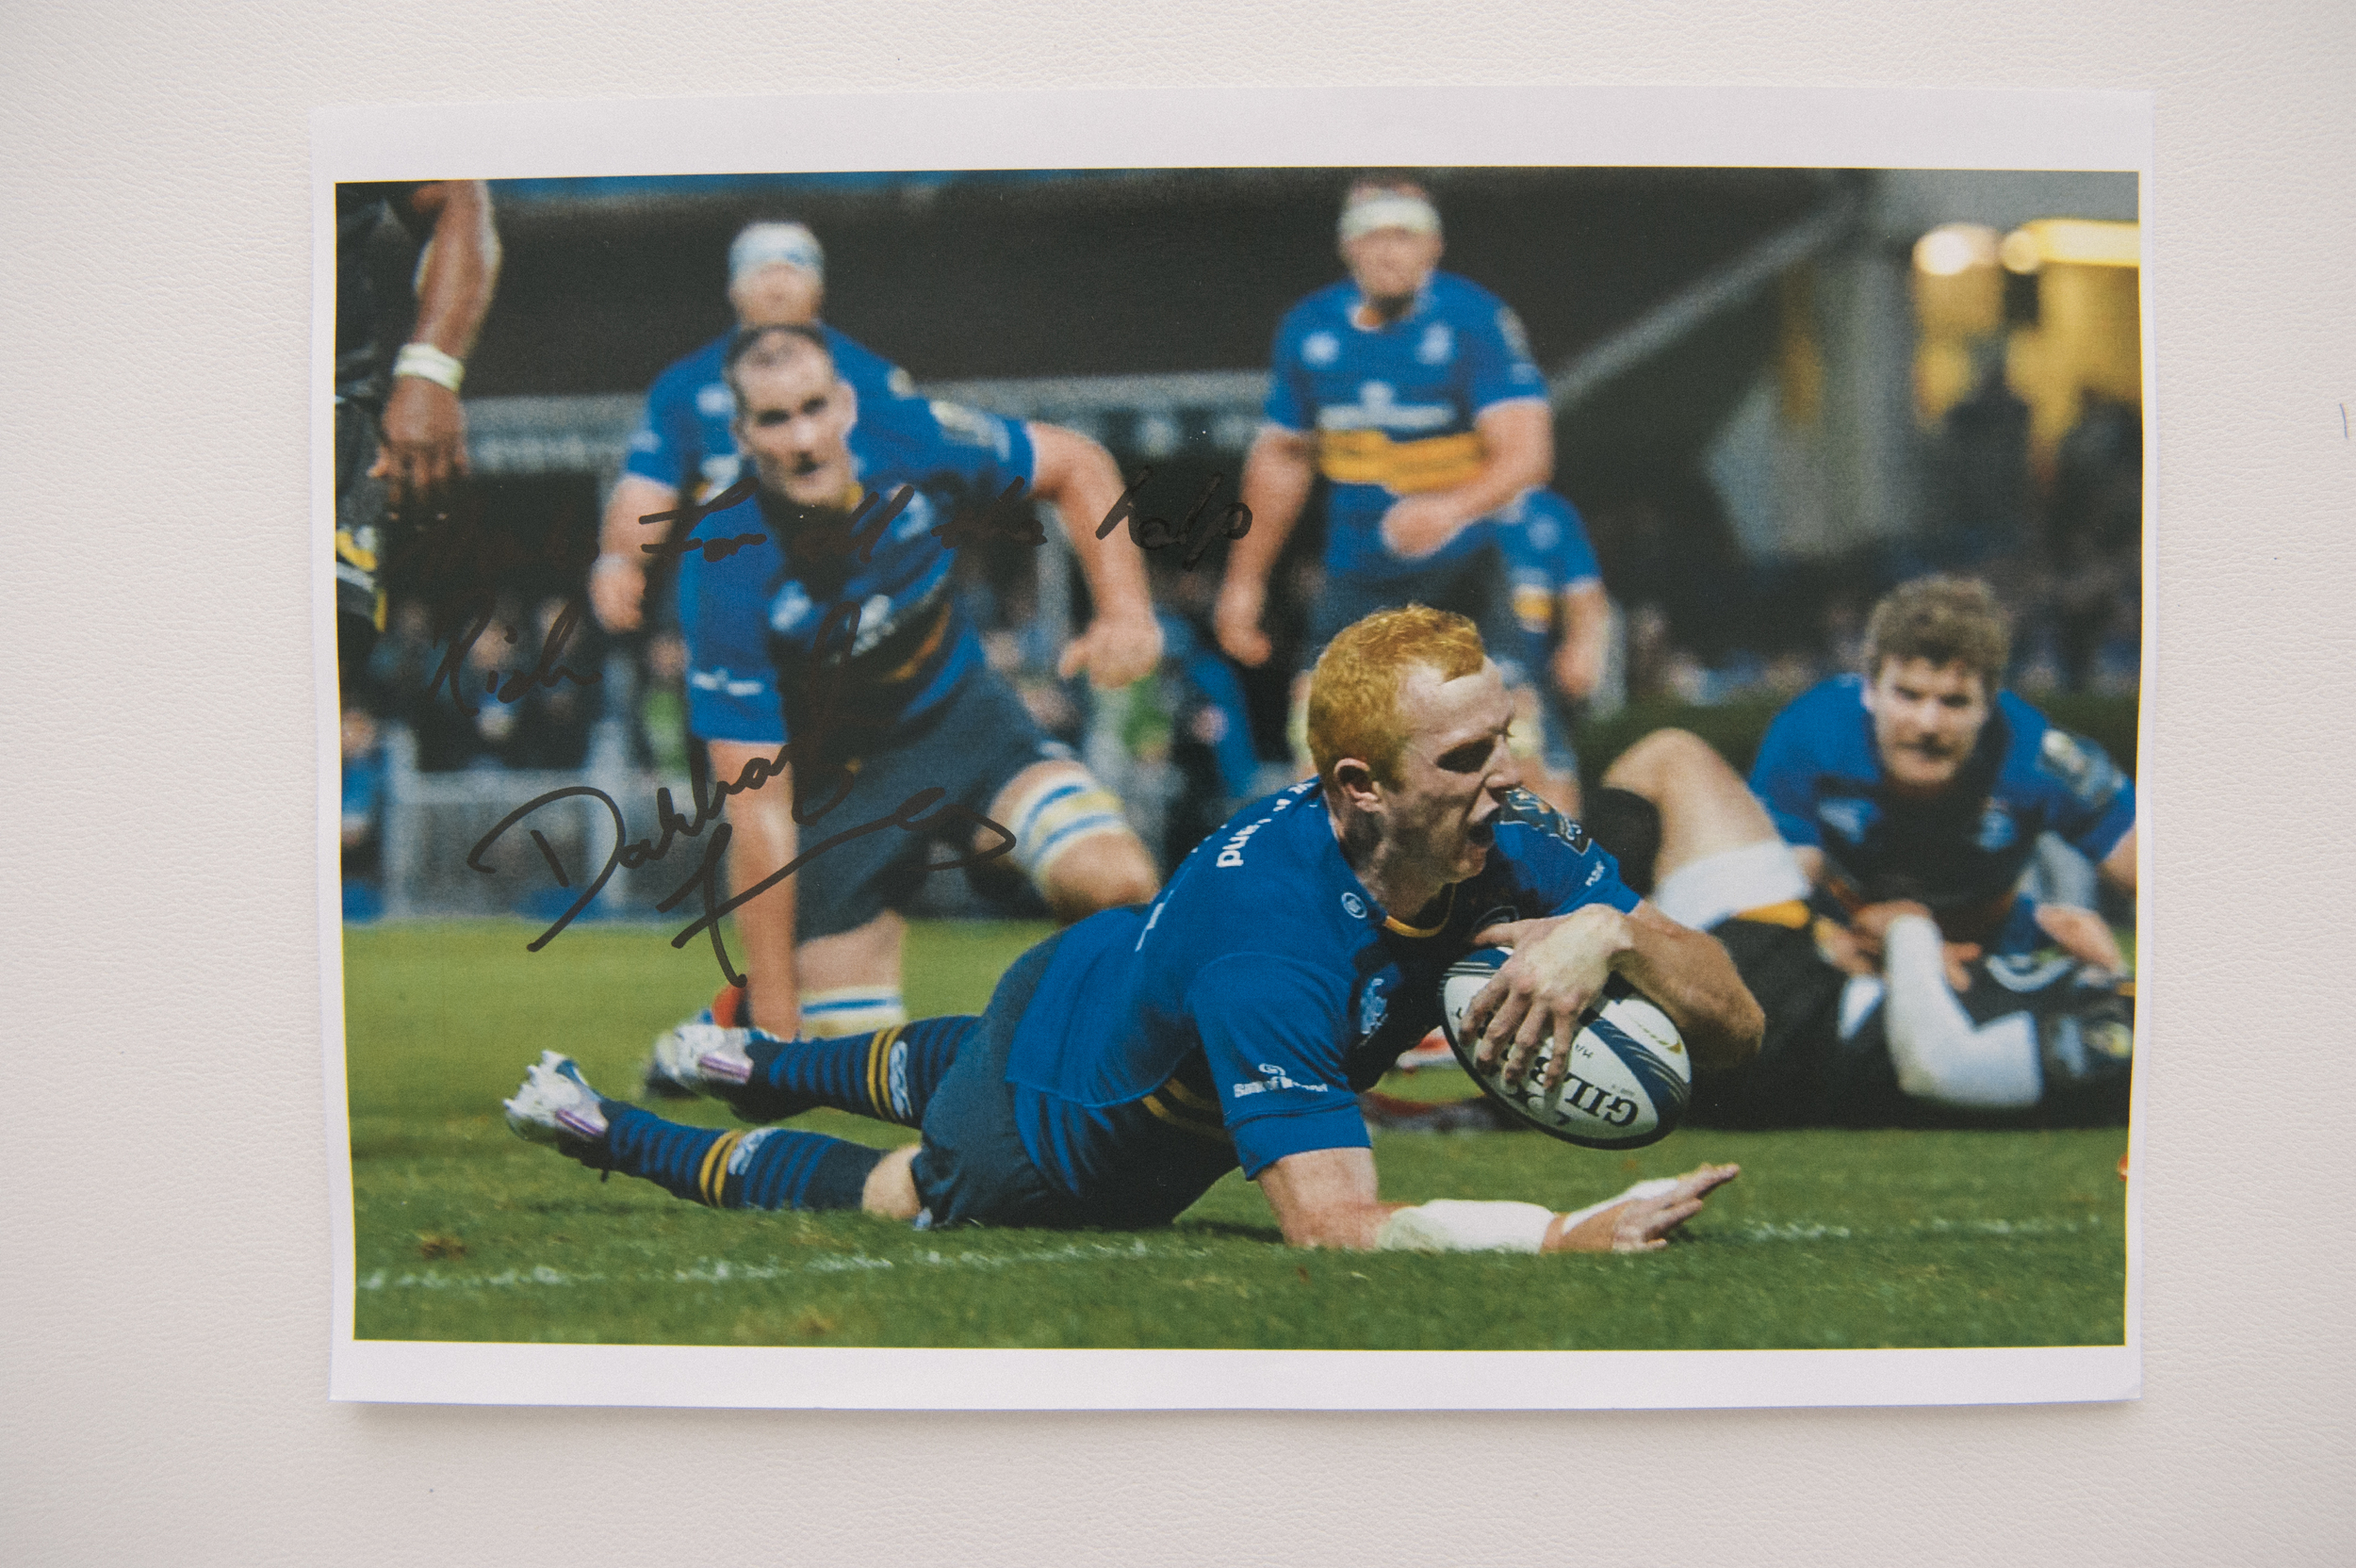 Leinster Rugby Player, Darragh Fanning, 'Thanks for all the help Rich, Darragh Fanning'